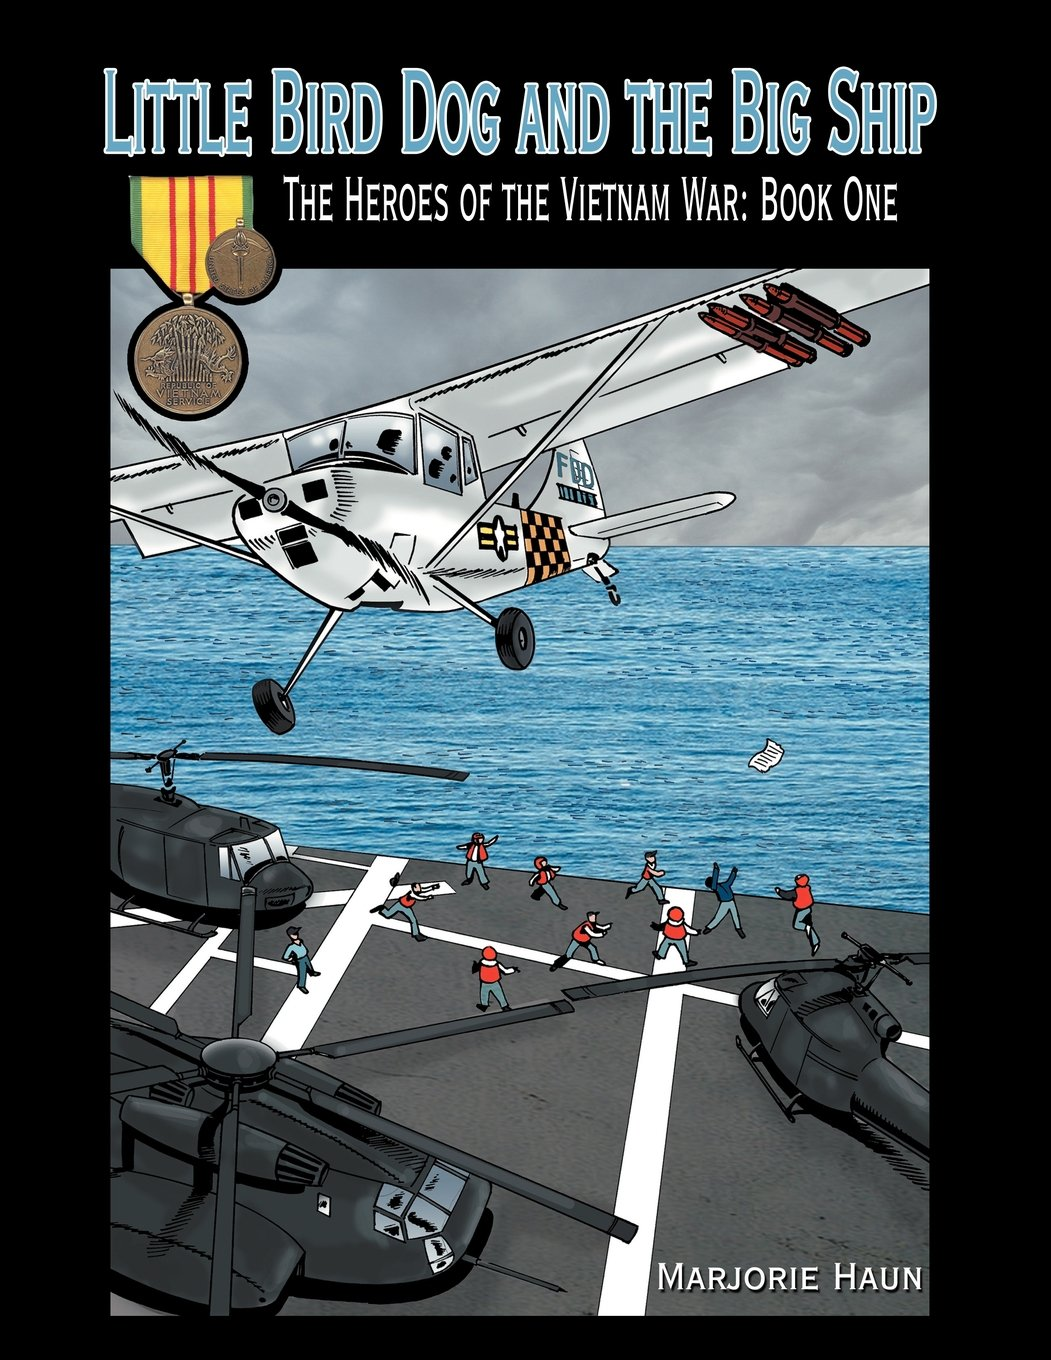 Little Bird Dog and the Big Ship: The Heroes of the Vietnam War: Book One